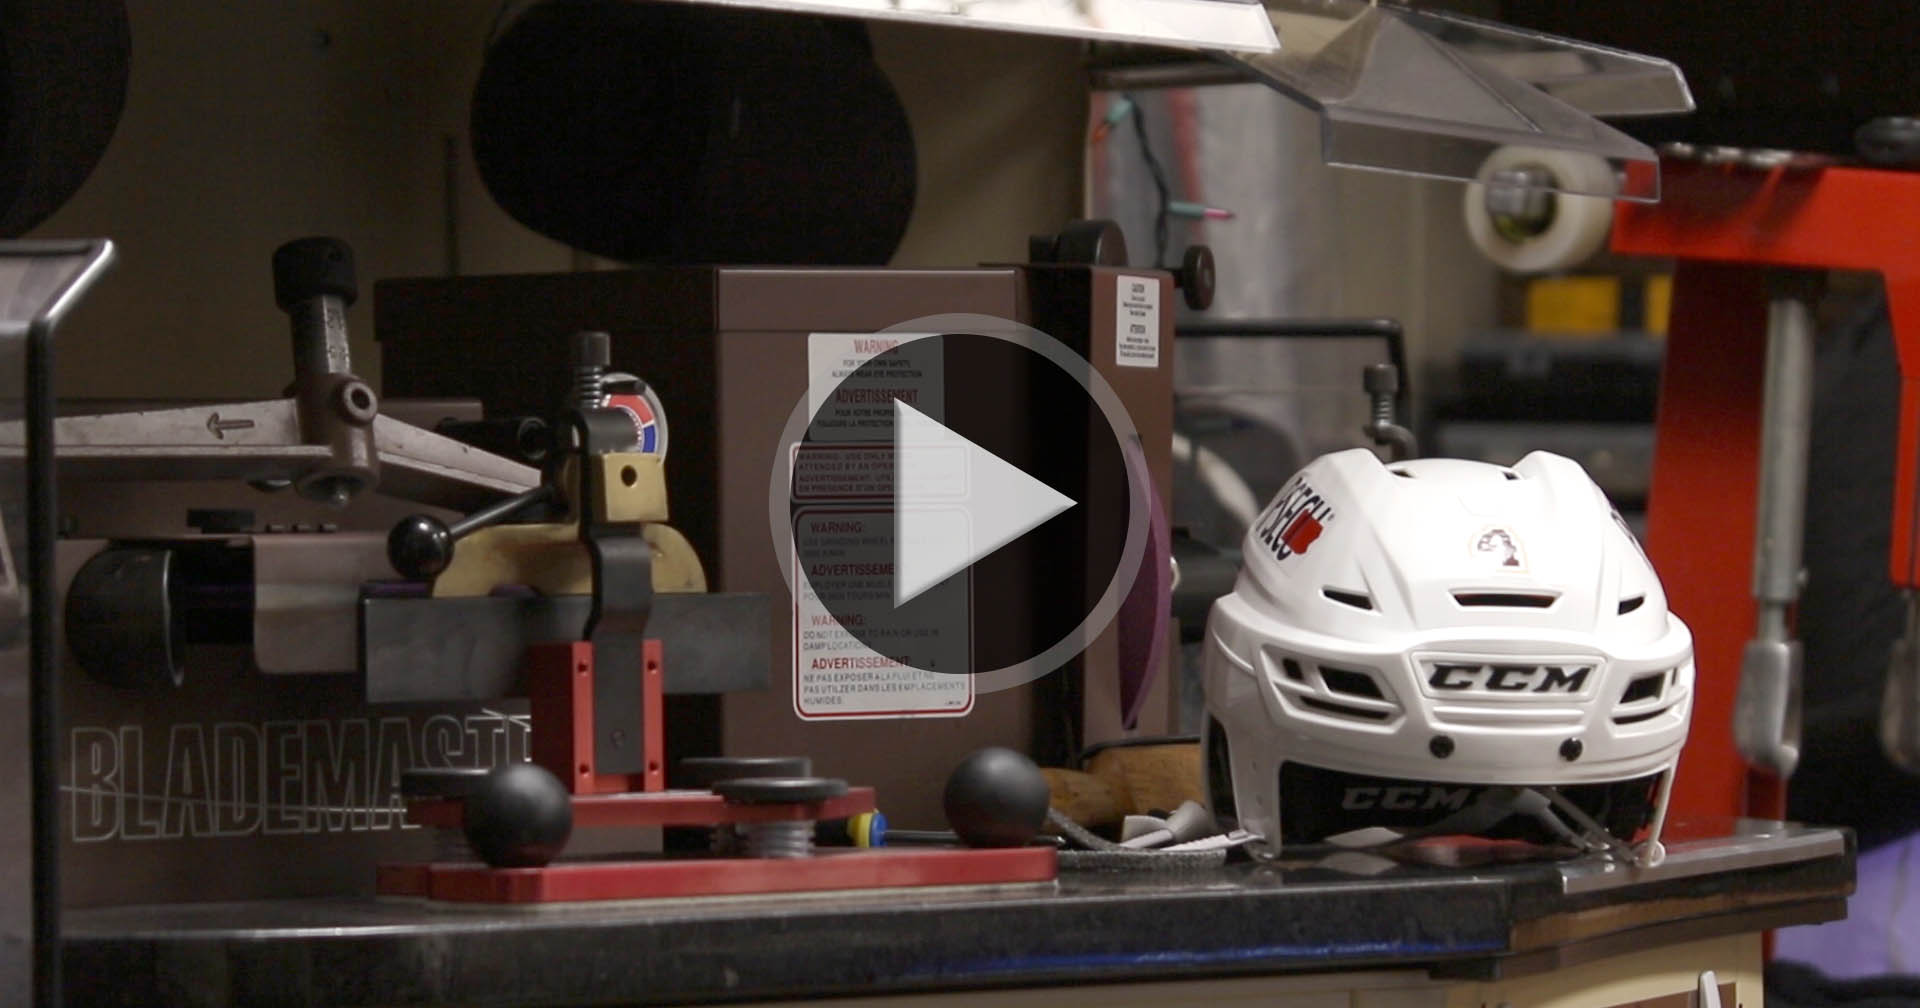 WATCH: A day in the life with the Hershey Bears equipment team